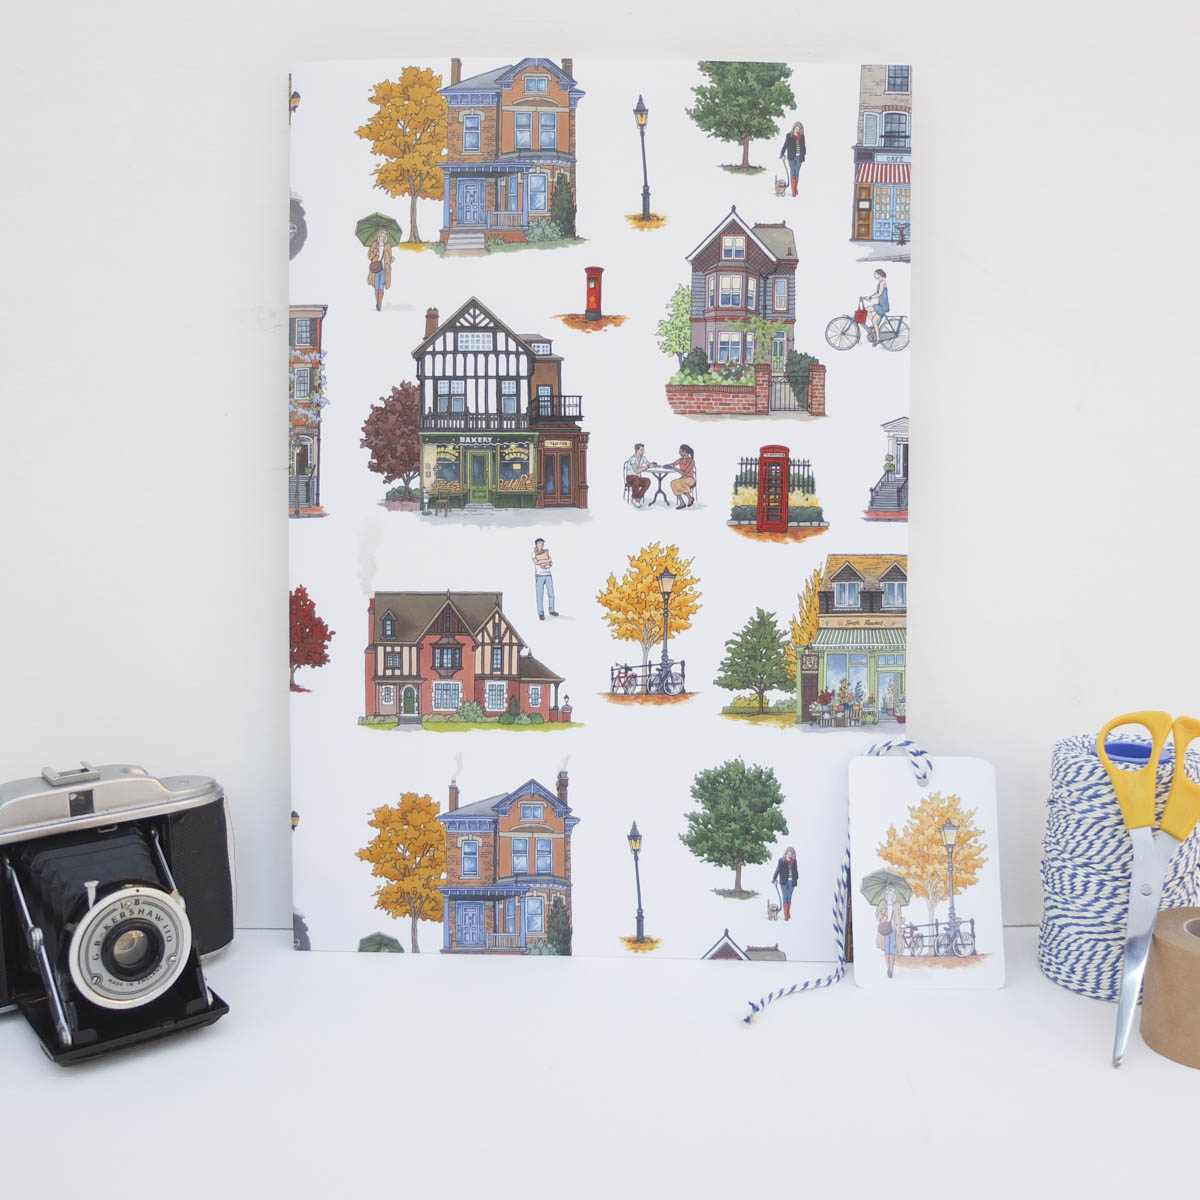 Wrapping paper by Jonathan Chapman